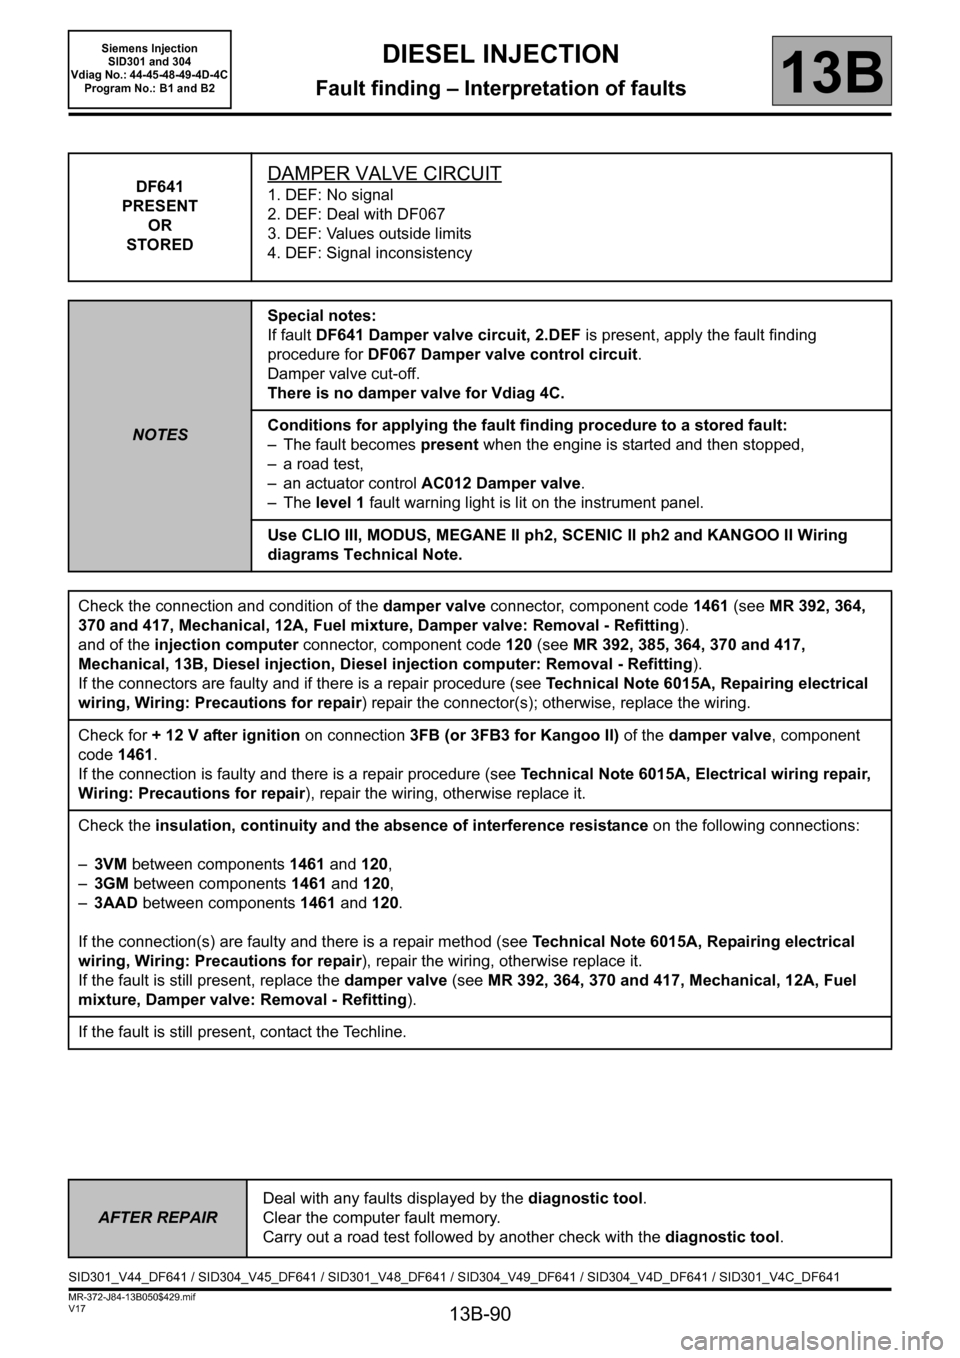 RENAULT SCENIC 2011 J95 / 3.G Engine And Peripherals Siemens Injection Workshop Manual, Page 90